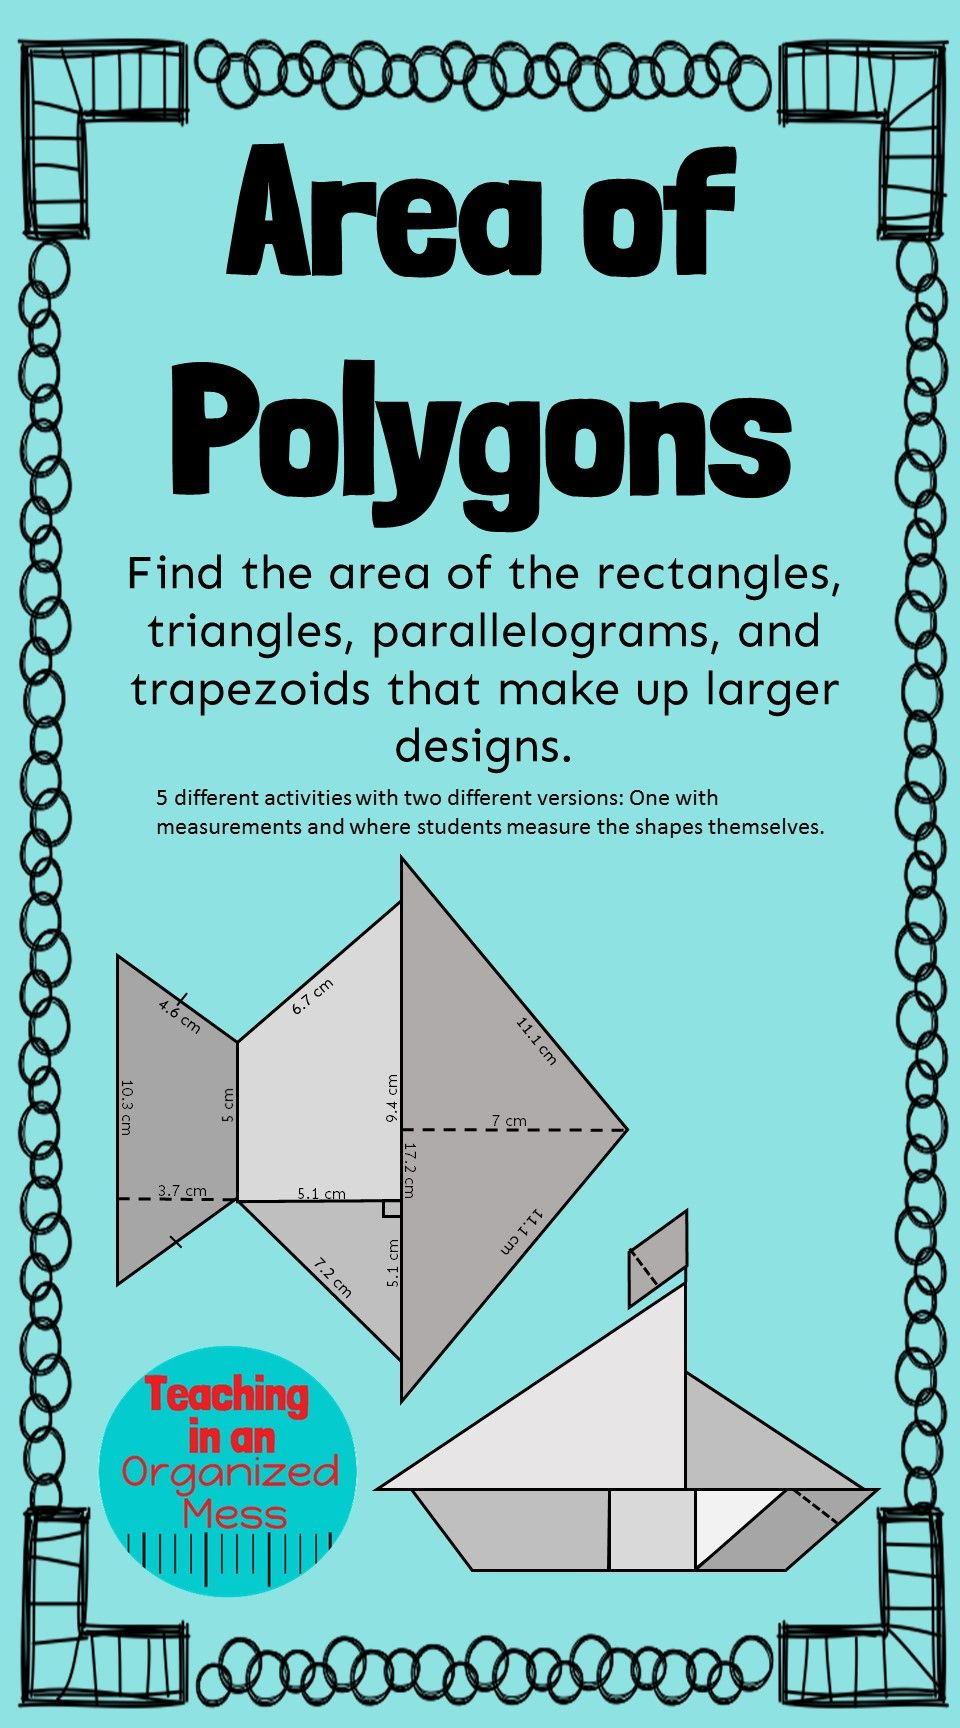 Students will find the area of rectangles, triangles, parallelograms ...